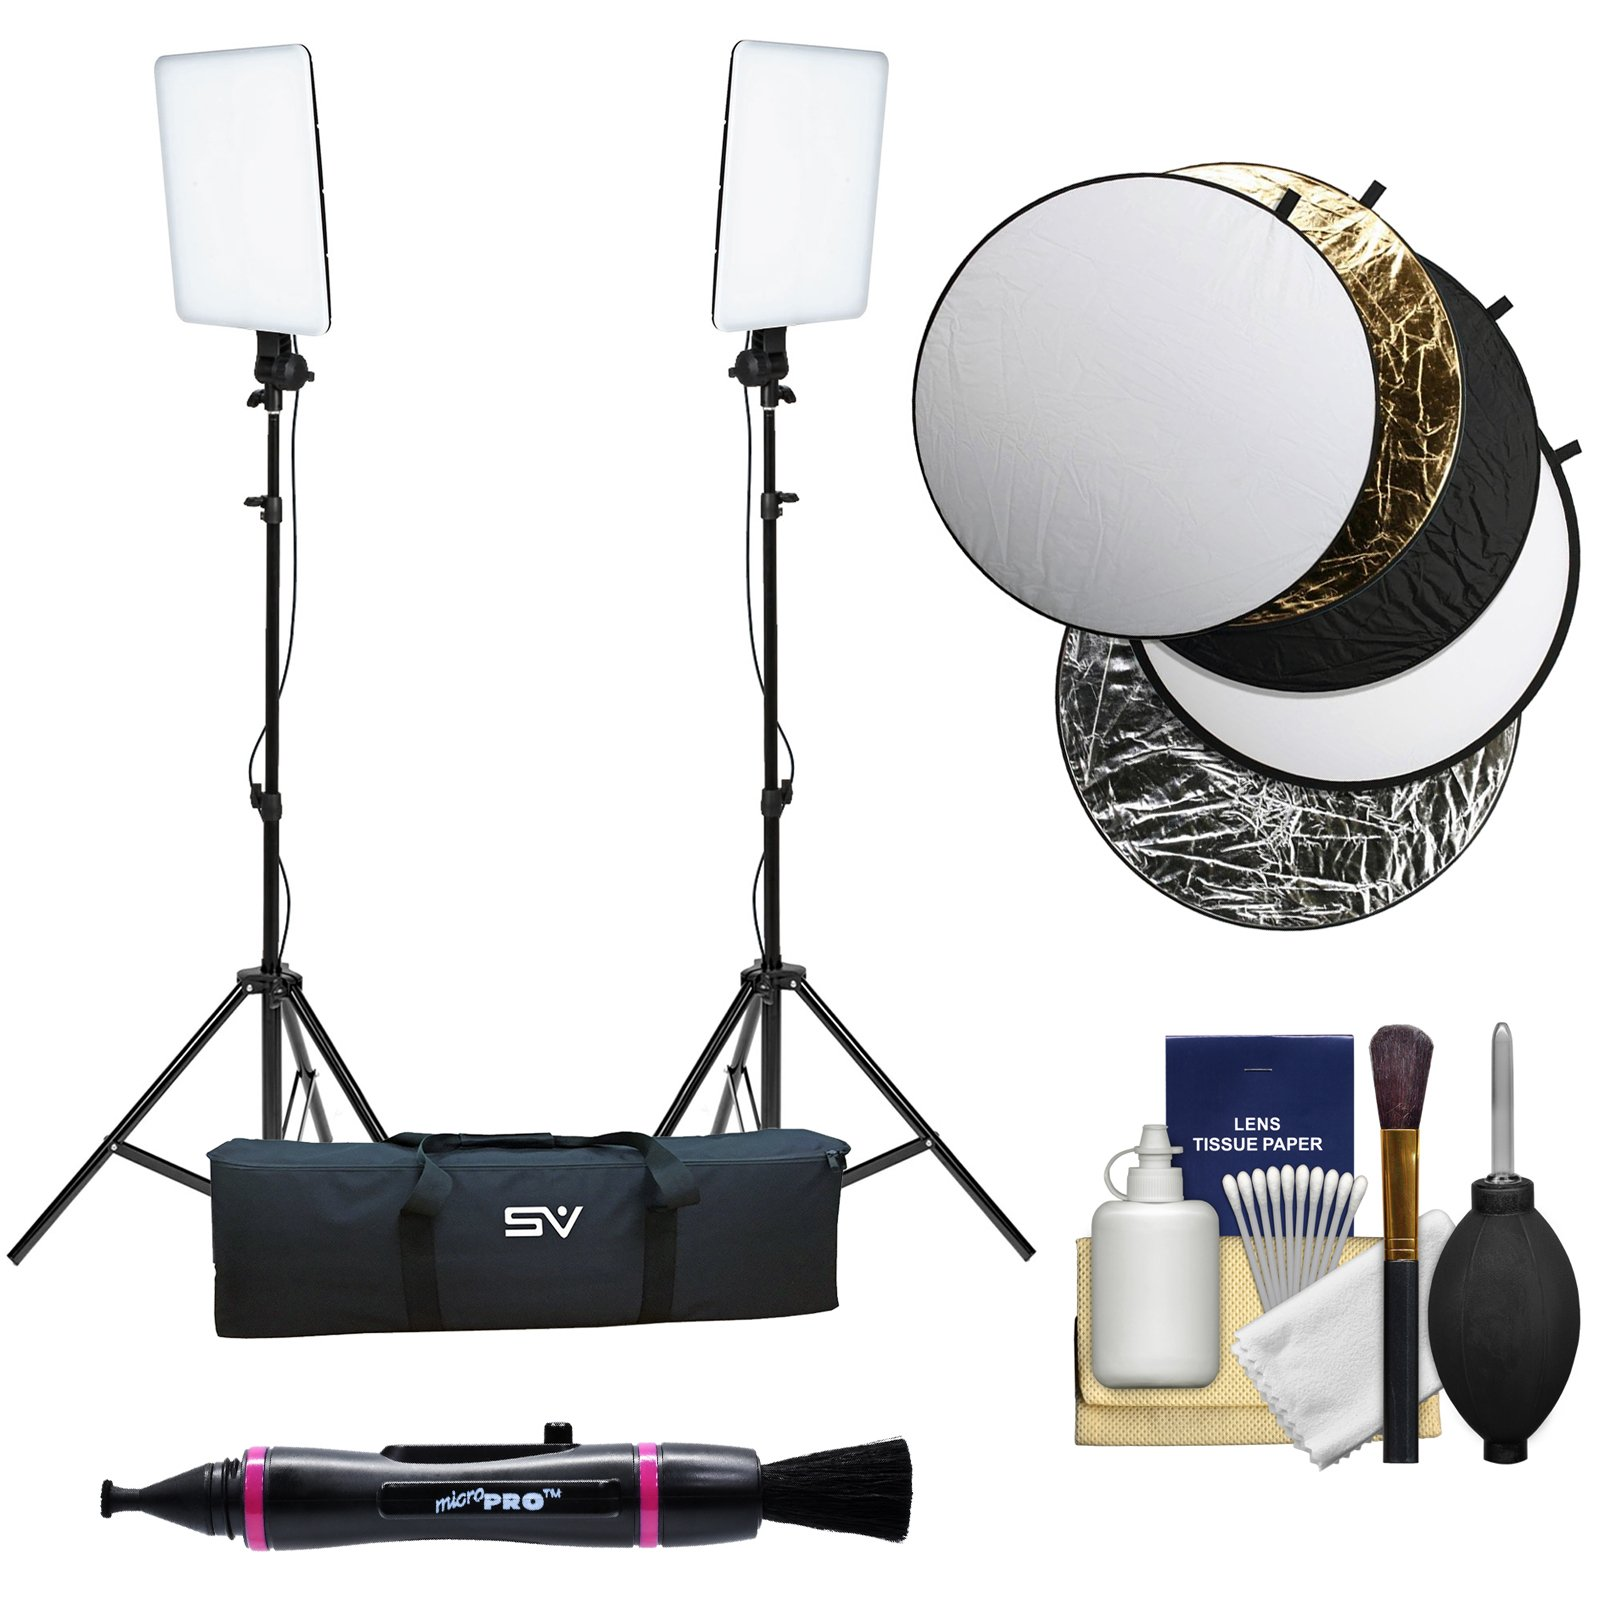 Smith-Victor SlimPanel 800 Watt Daylight Two LED Light Kit with Stands & Case with Reflector Disk + Cleaning Kit